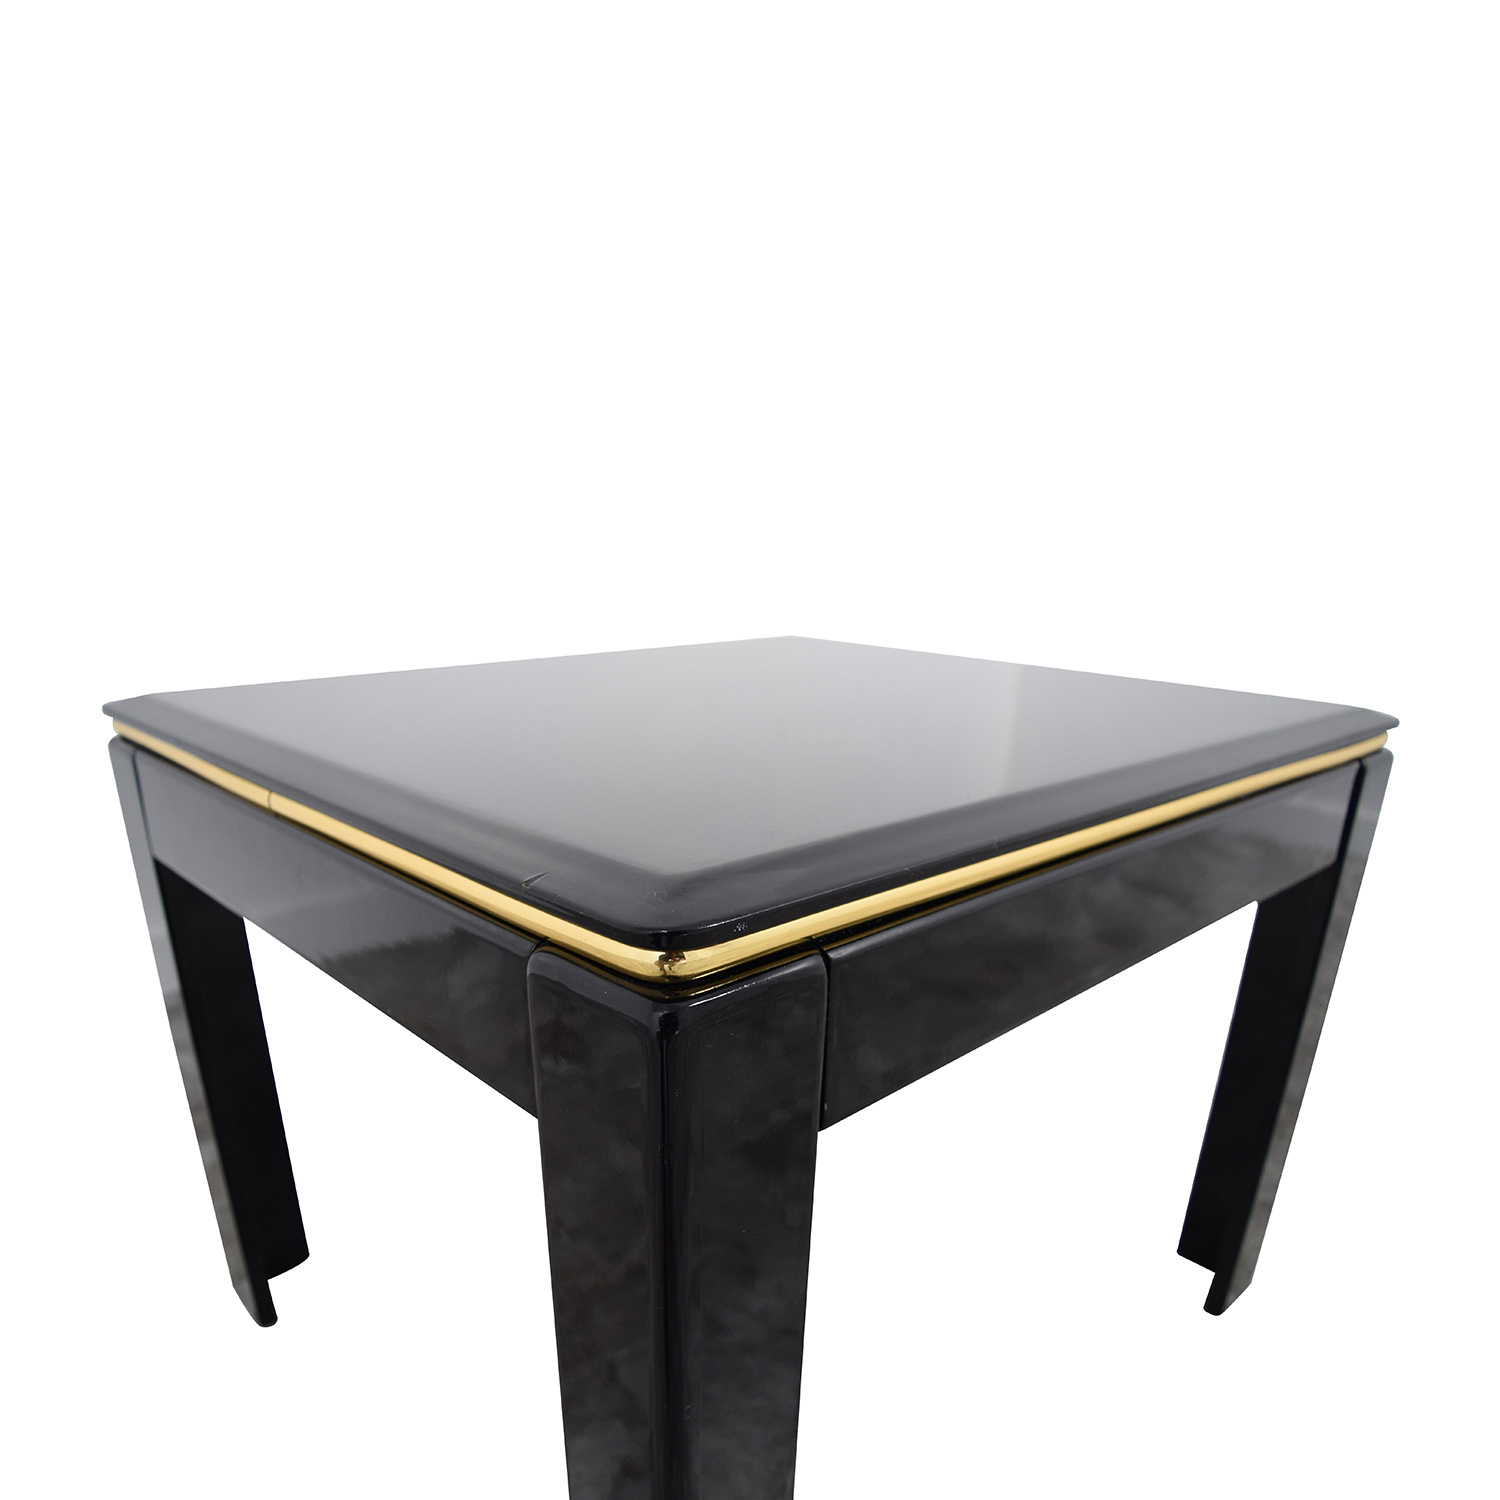 76% OFF Black Lacquer End Table Tables